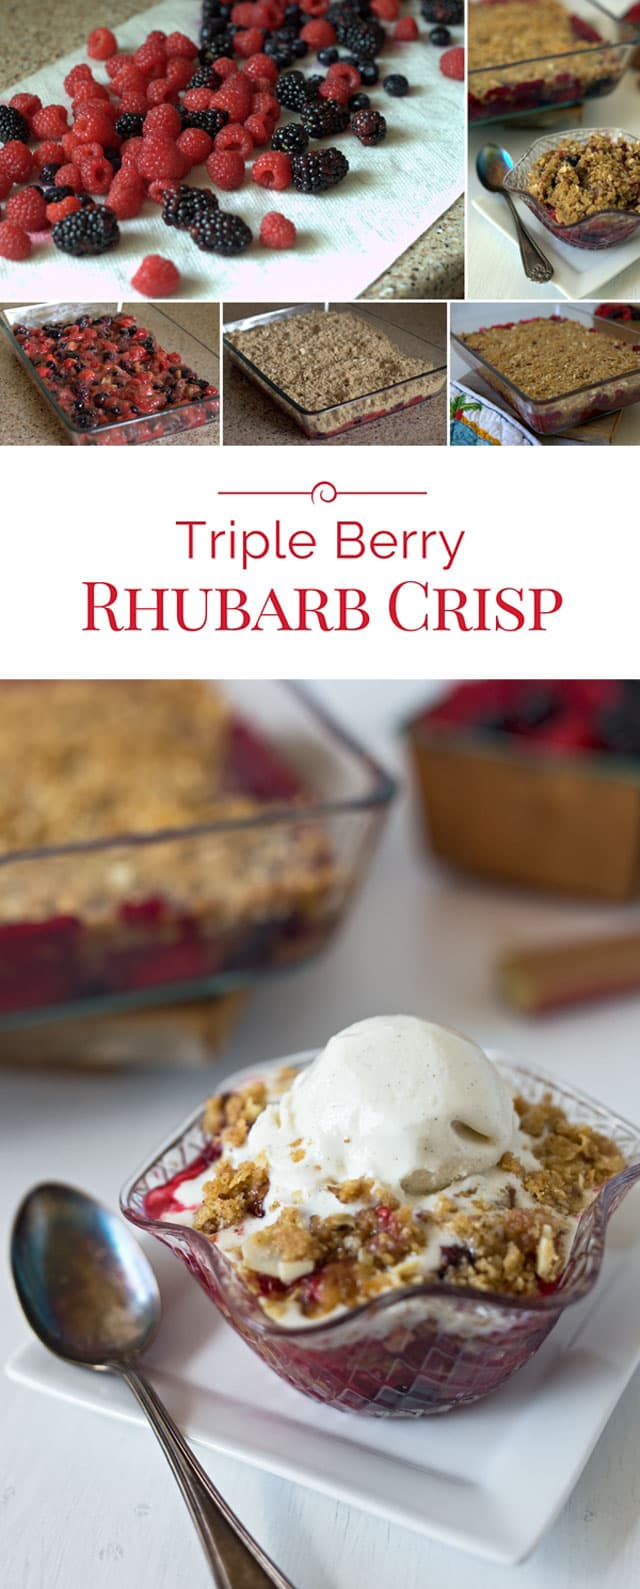 Triple-Berry-Rhubarb-Crisp-Collage-2-Barbara-Bakes